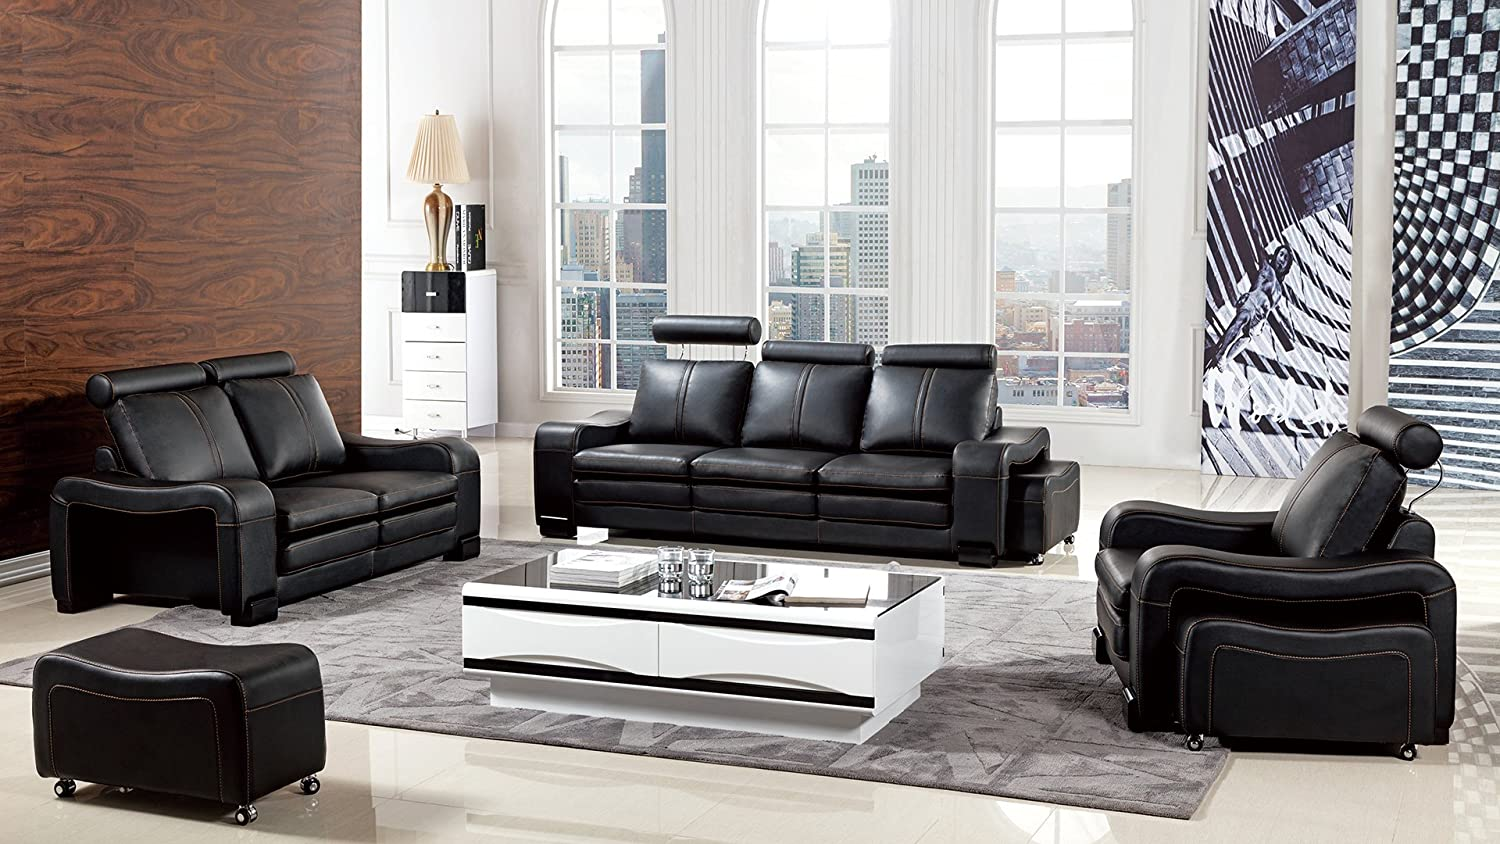 American Eagle Furniture Delaware Collection Modern Living Room Premium Leather 6 Piece Sofa Set and Wheeled Ottomans, Black